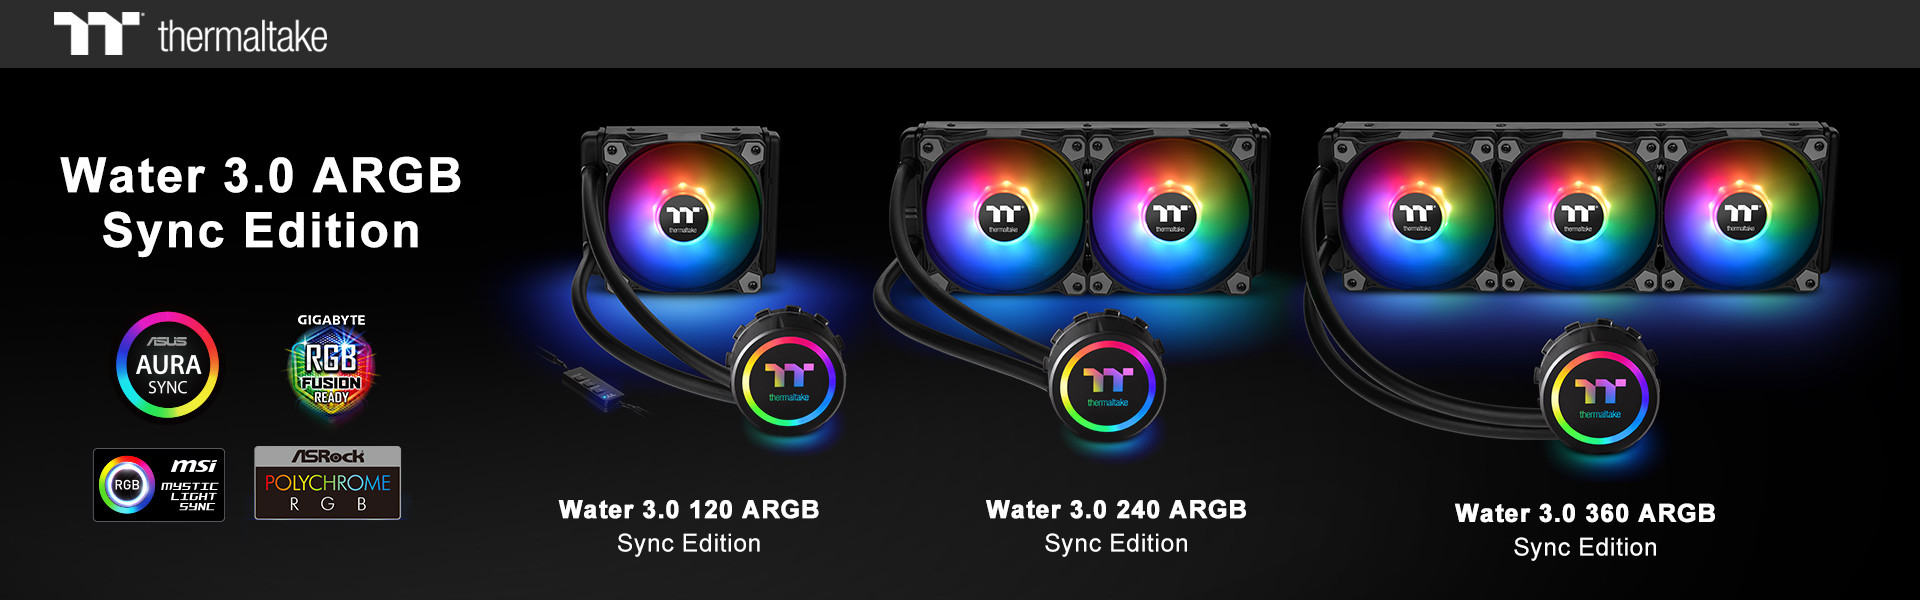 Thermaltake Announces New Watercooling Lineup With Water 3 0